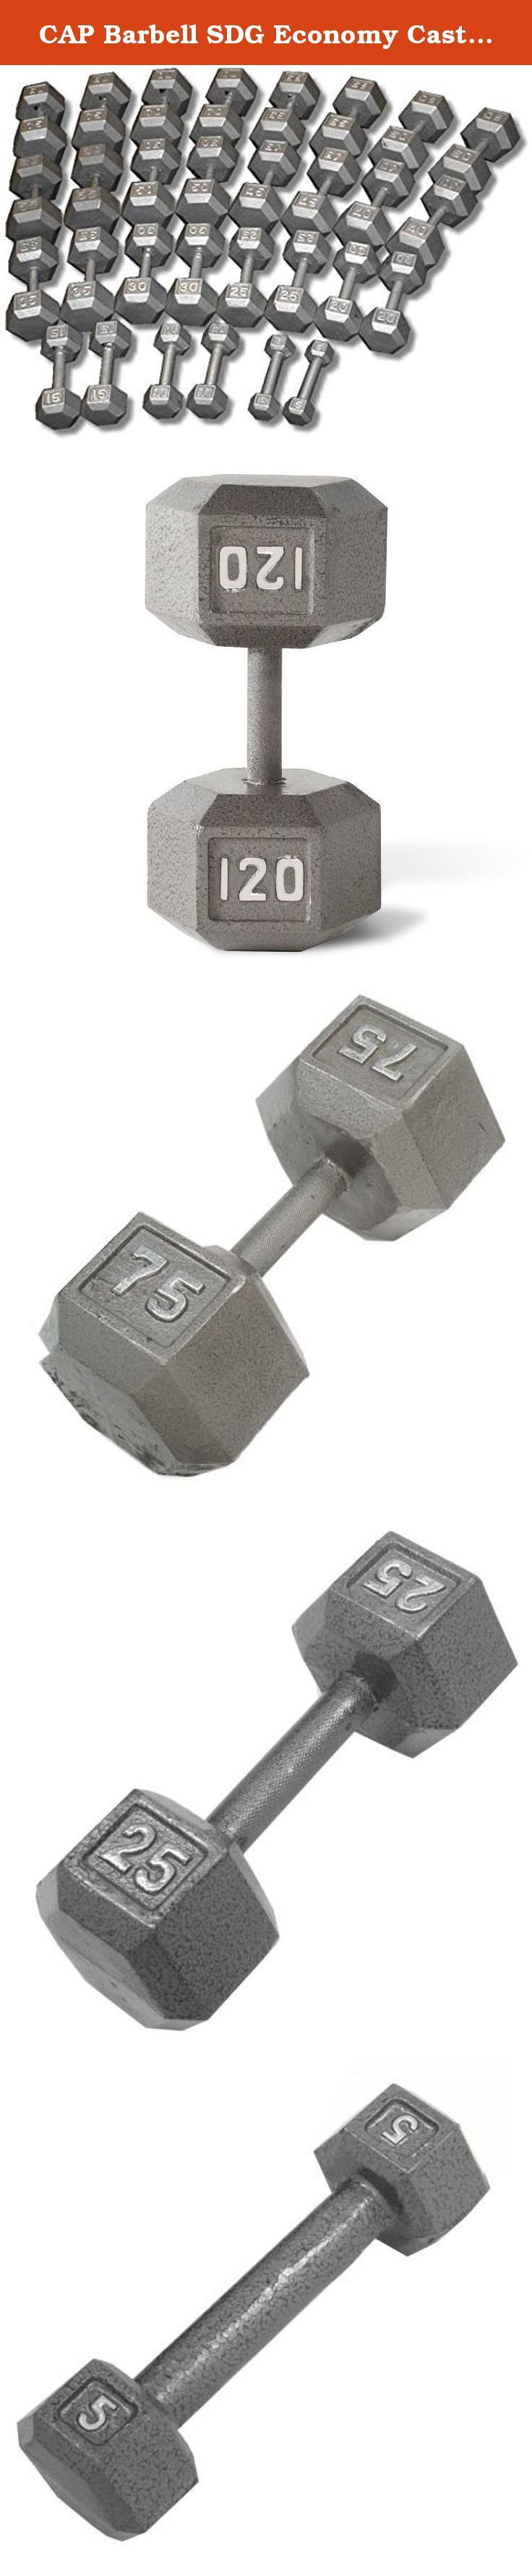 CAP Barbell SDG Economy Cast Iron Hex Dumbbell Set - 5 to 120 lbs (24 pairs) - Full Home Gym Weight Set. Economy Cast Iron Hex Dumbbell Sets from CAP Barbell - Hex dumbbell sets are often the perfect dumbbell choice for home gym and garage gym use. They are economical and space efficient and for a lot of people that is the most important criteria when purchasing dumbbells for home use. Hexagonal dumbbell heads are non-rolling when set down on the floor or racks. Cast iron heads increase…